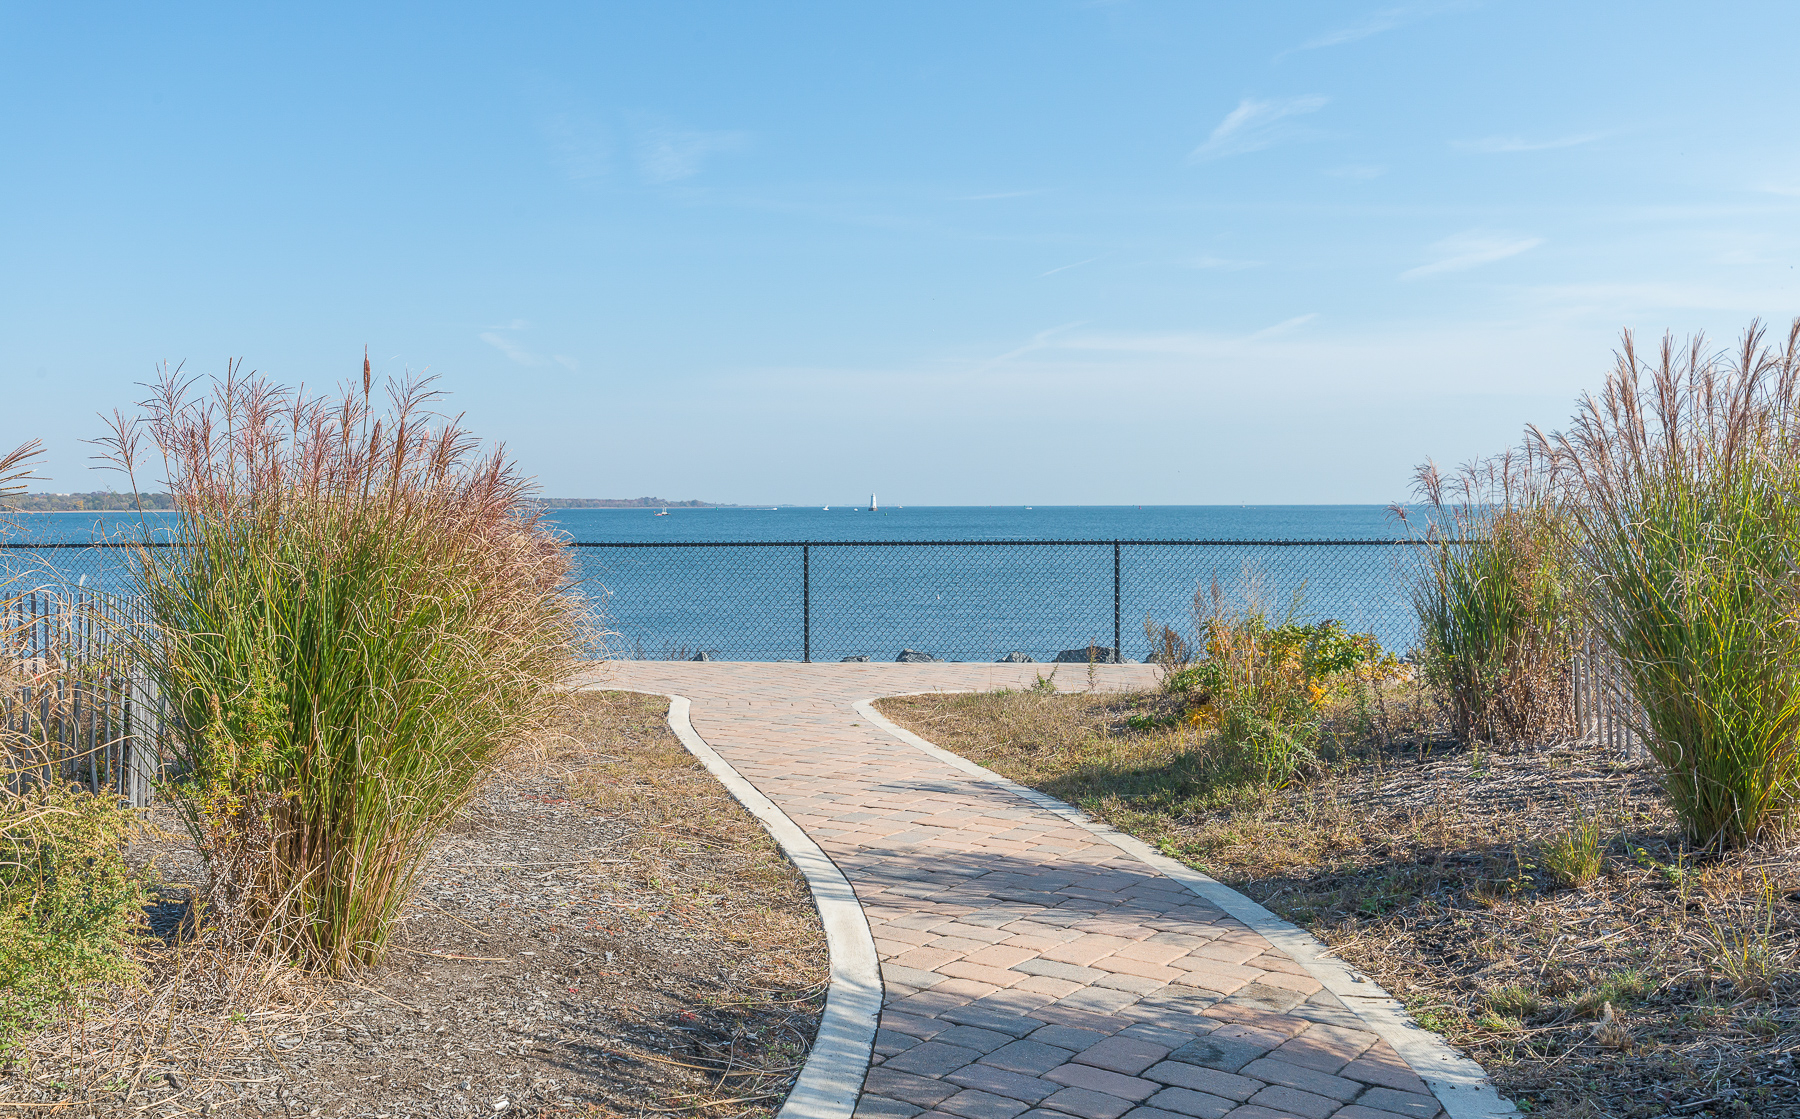 独户住宅 为 销售 在 Premier Waterfront in Lighthouse Bay 30 South Shore Drive South Amboy, 08879 美国